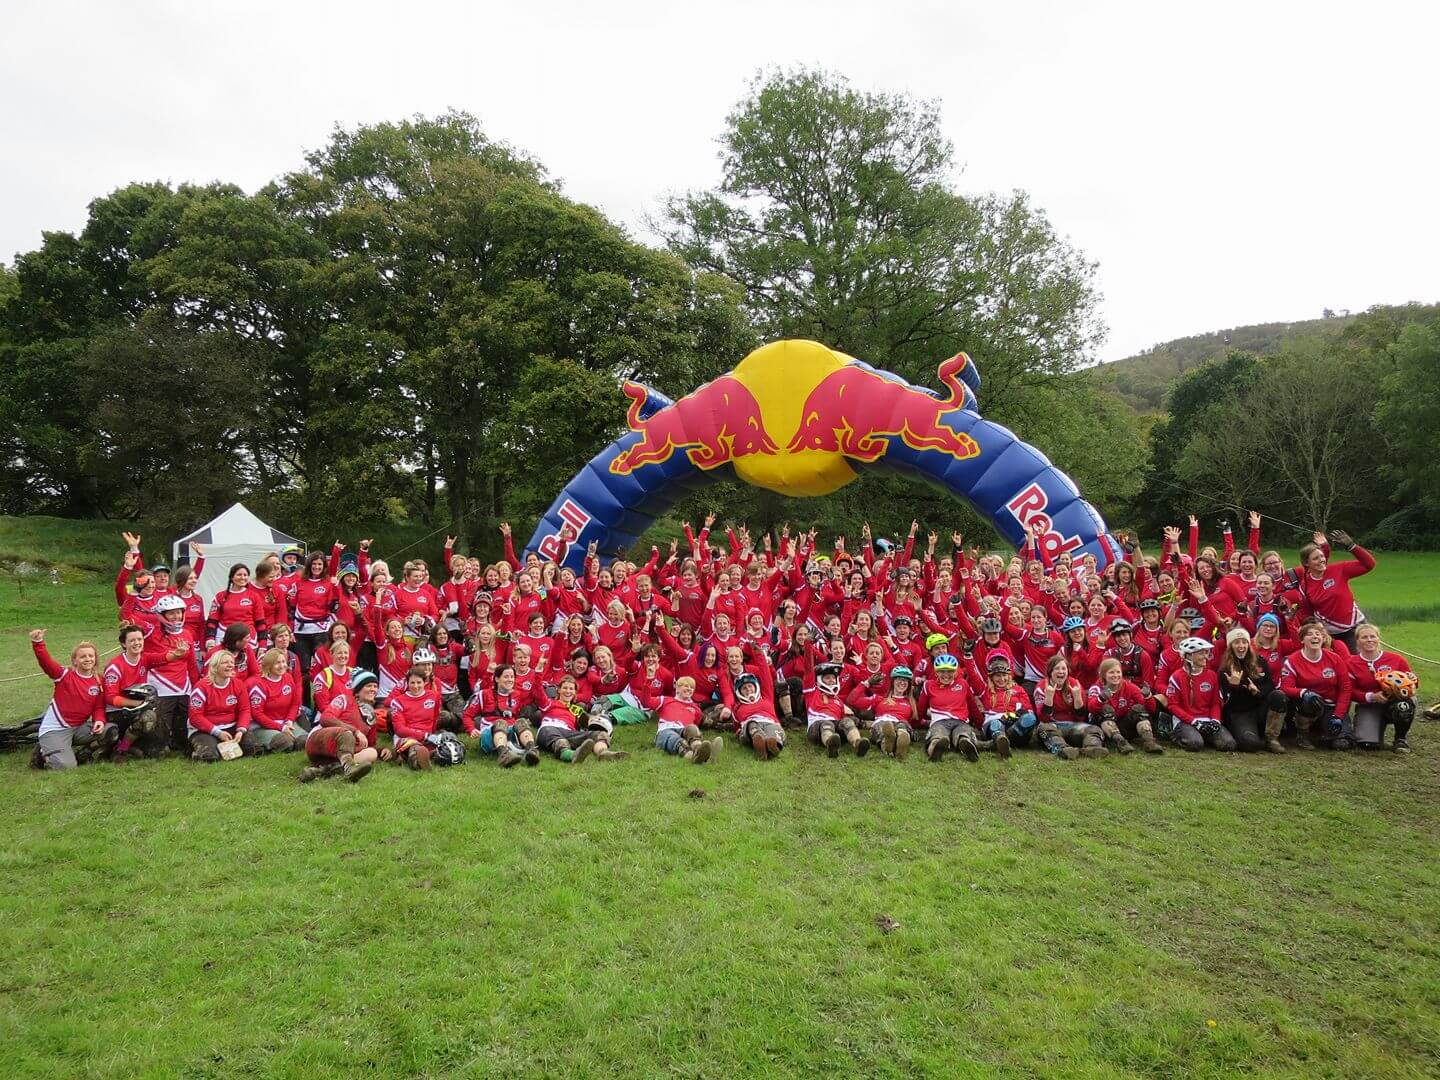 Flow MTB riders Rebecca and Kate at the 2017 Red Bull Foxhunt